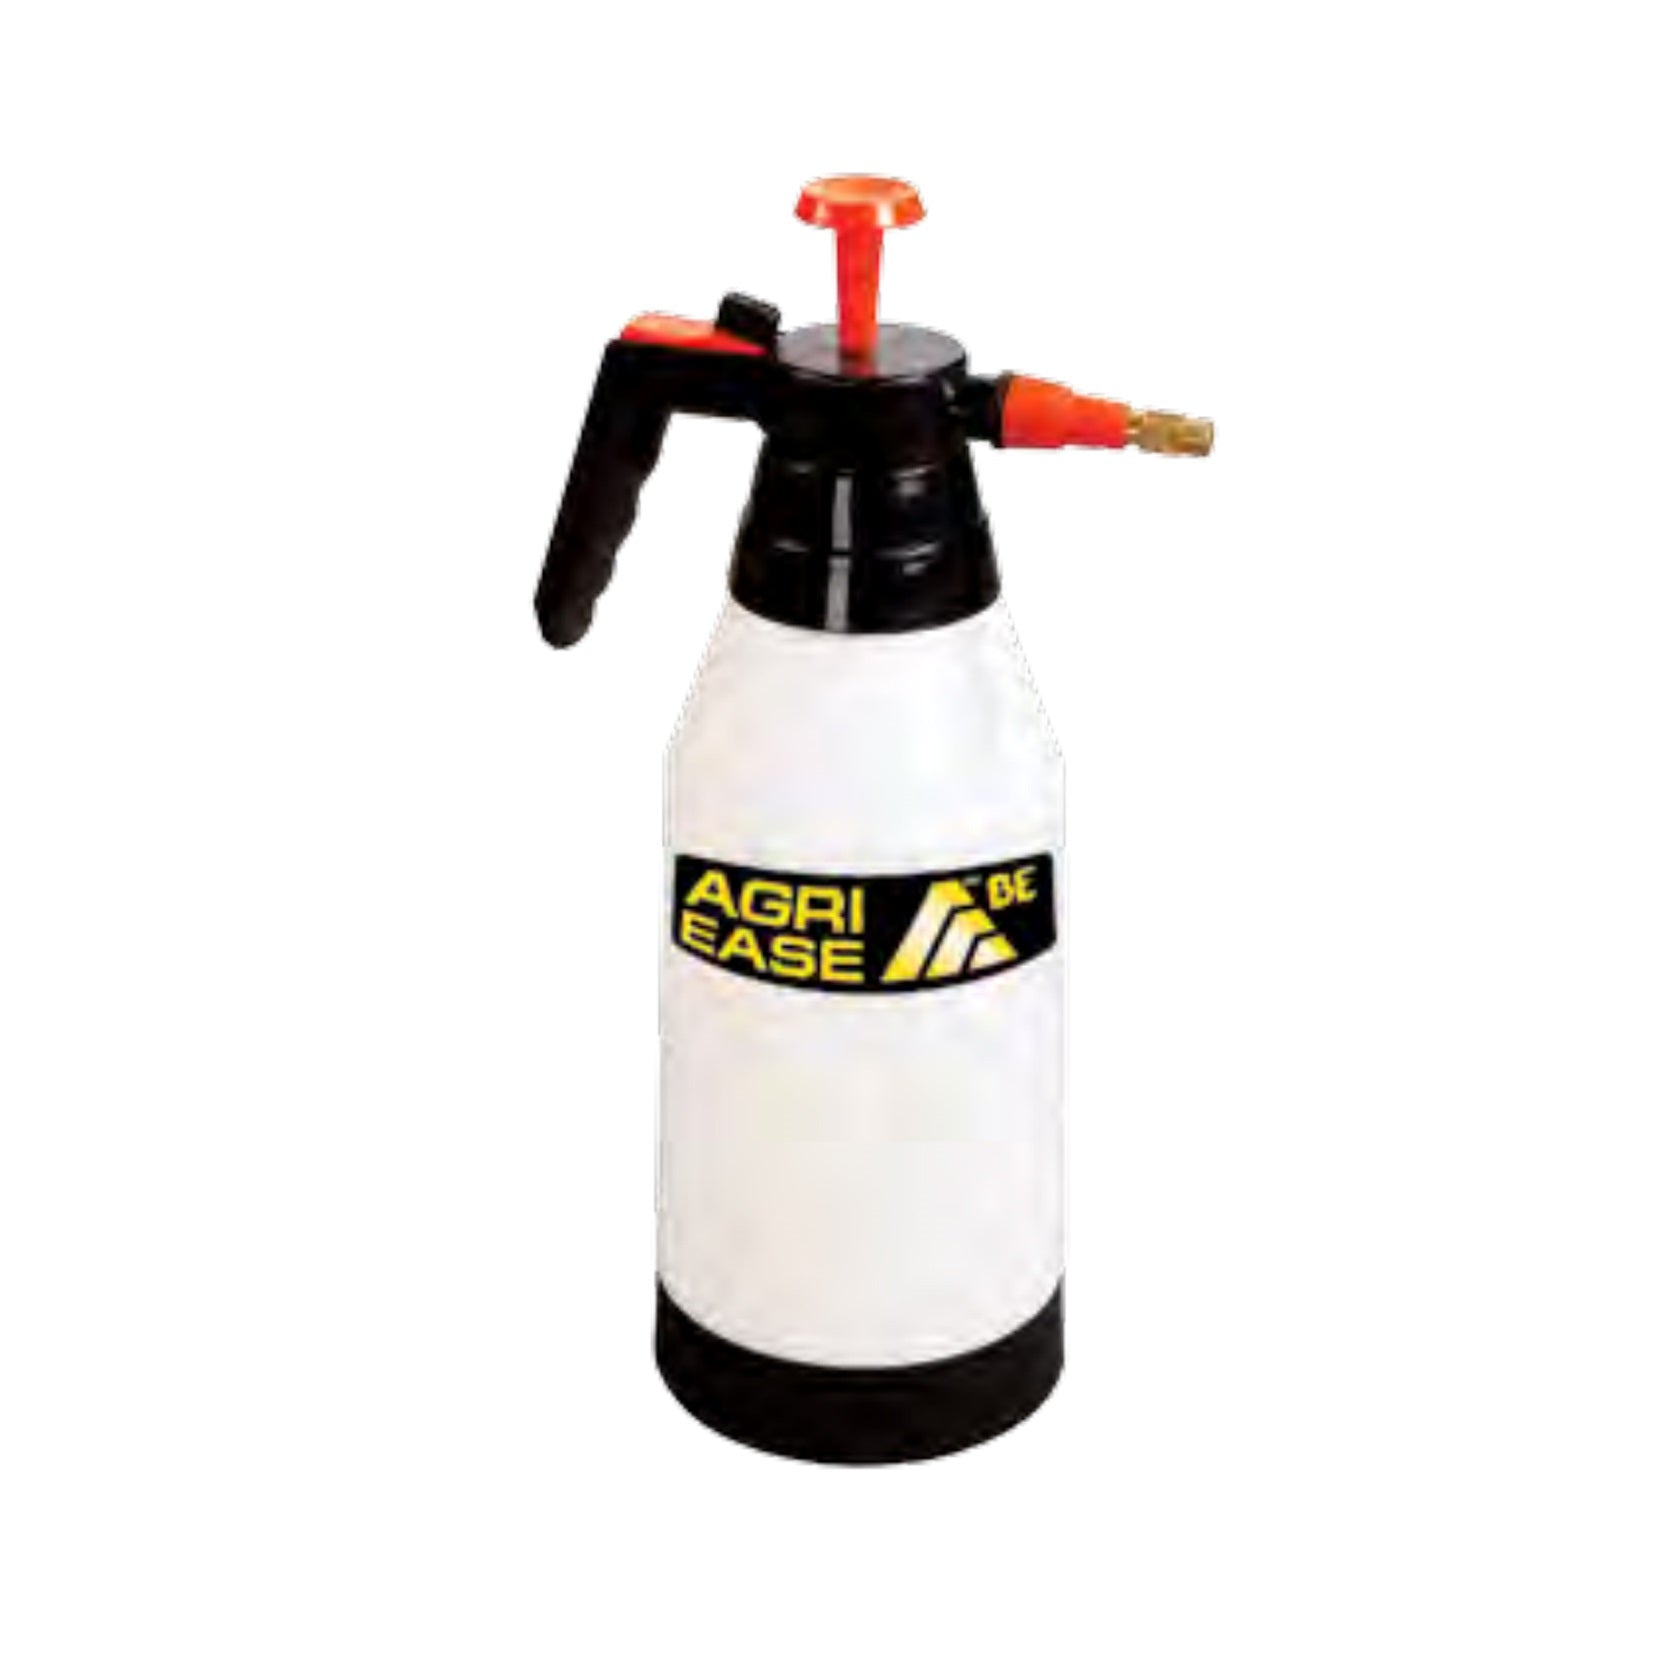 BE Handheld Pump Sprayer 2L (66fl oz)